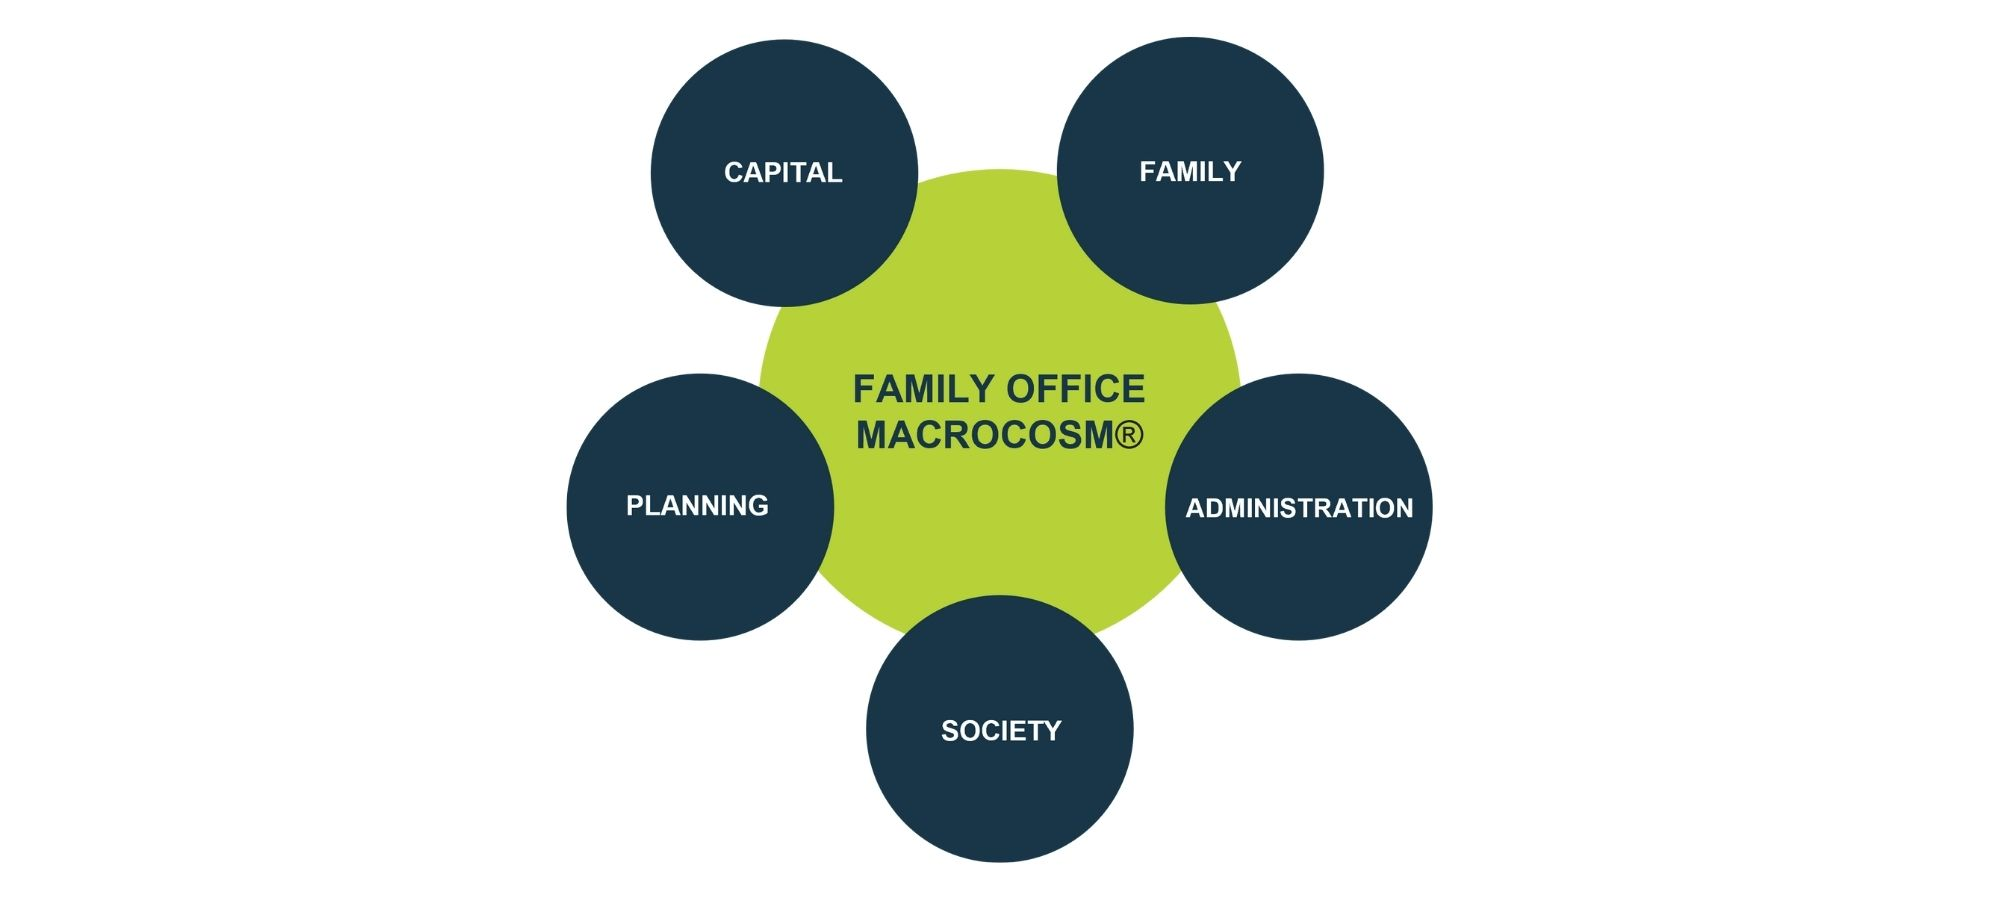 """green circle with """"Family Office Macrocosm®"""" in the center and 5 smaller blue circles around it that say """"Family"""", """"Administration"""", """"Society"""", """"Planning"""" and """"Capital"""" distributed proportionally"""